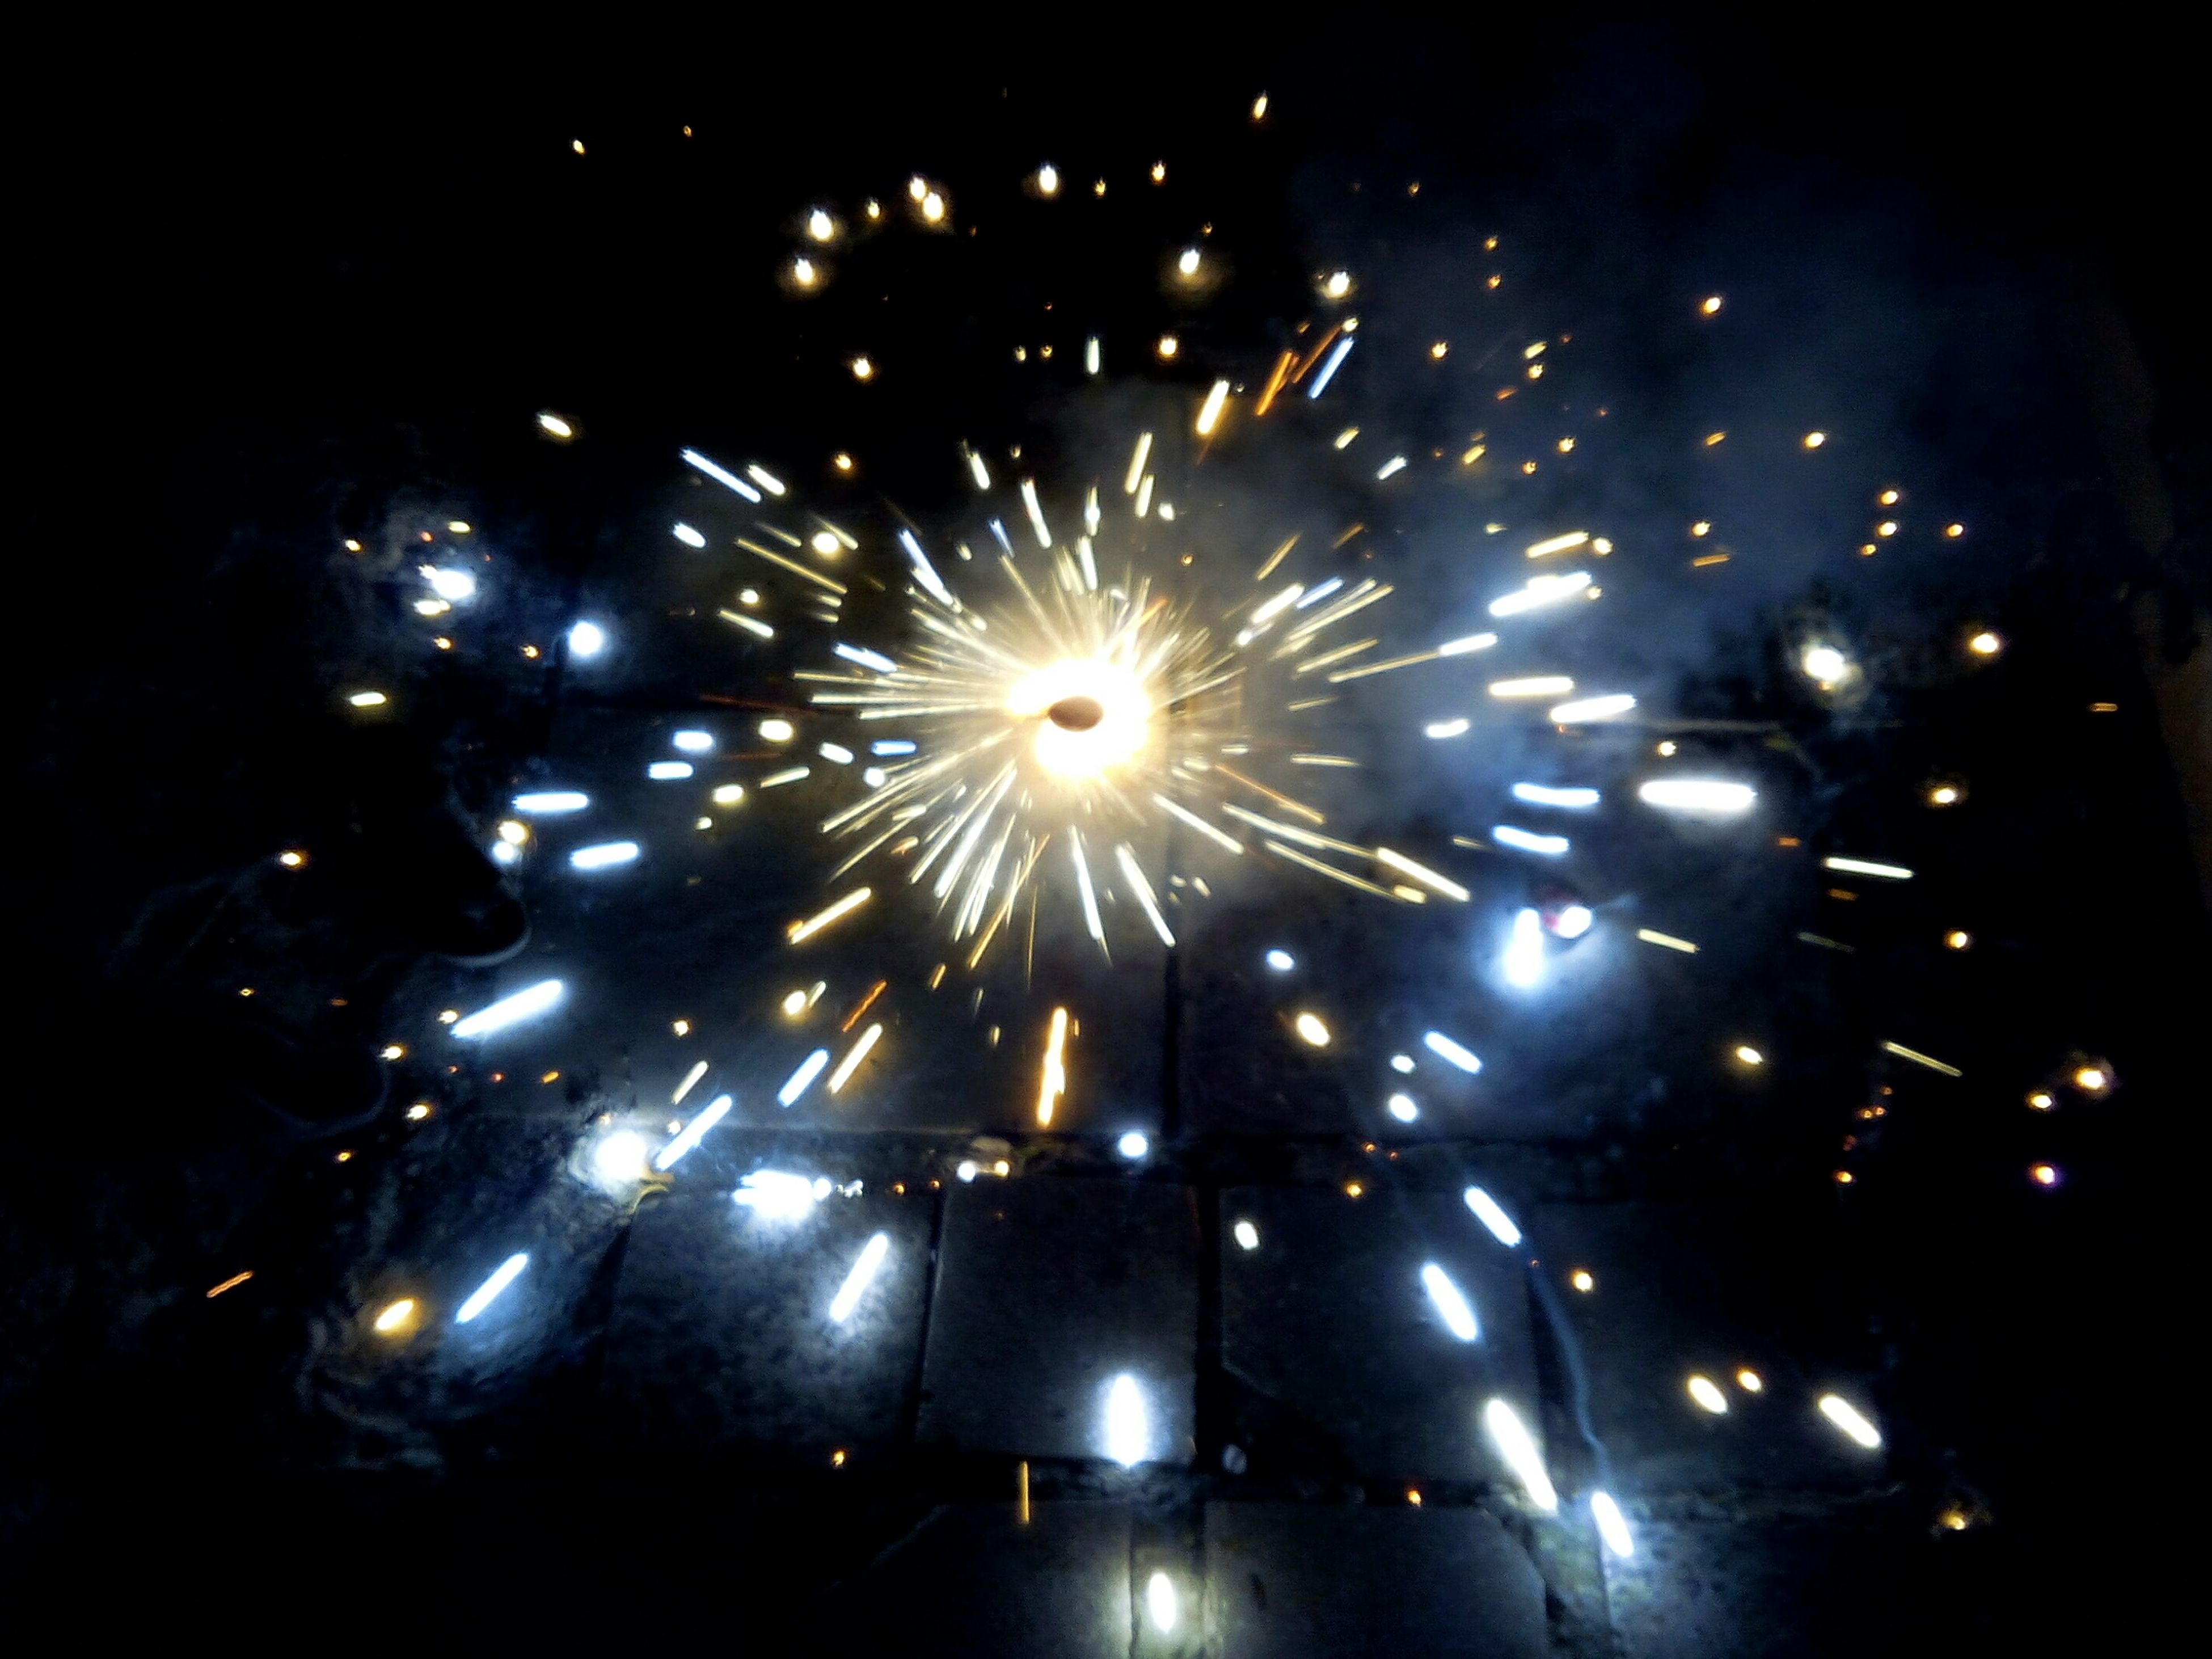 night, illuminated, firework display, glowing, celebration, exploding, long exposure, firework - man made object, sparks, arts culture and entertainment, firework, event, motion, low angle view, lighting equipment, celebration event, dark, blurred motion, entertainment, light - natural phenomenon